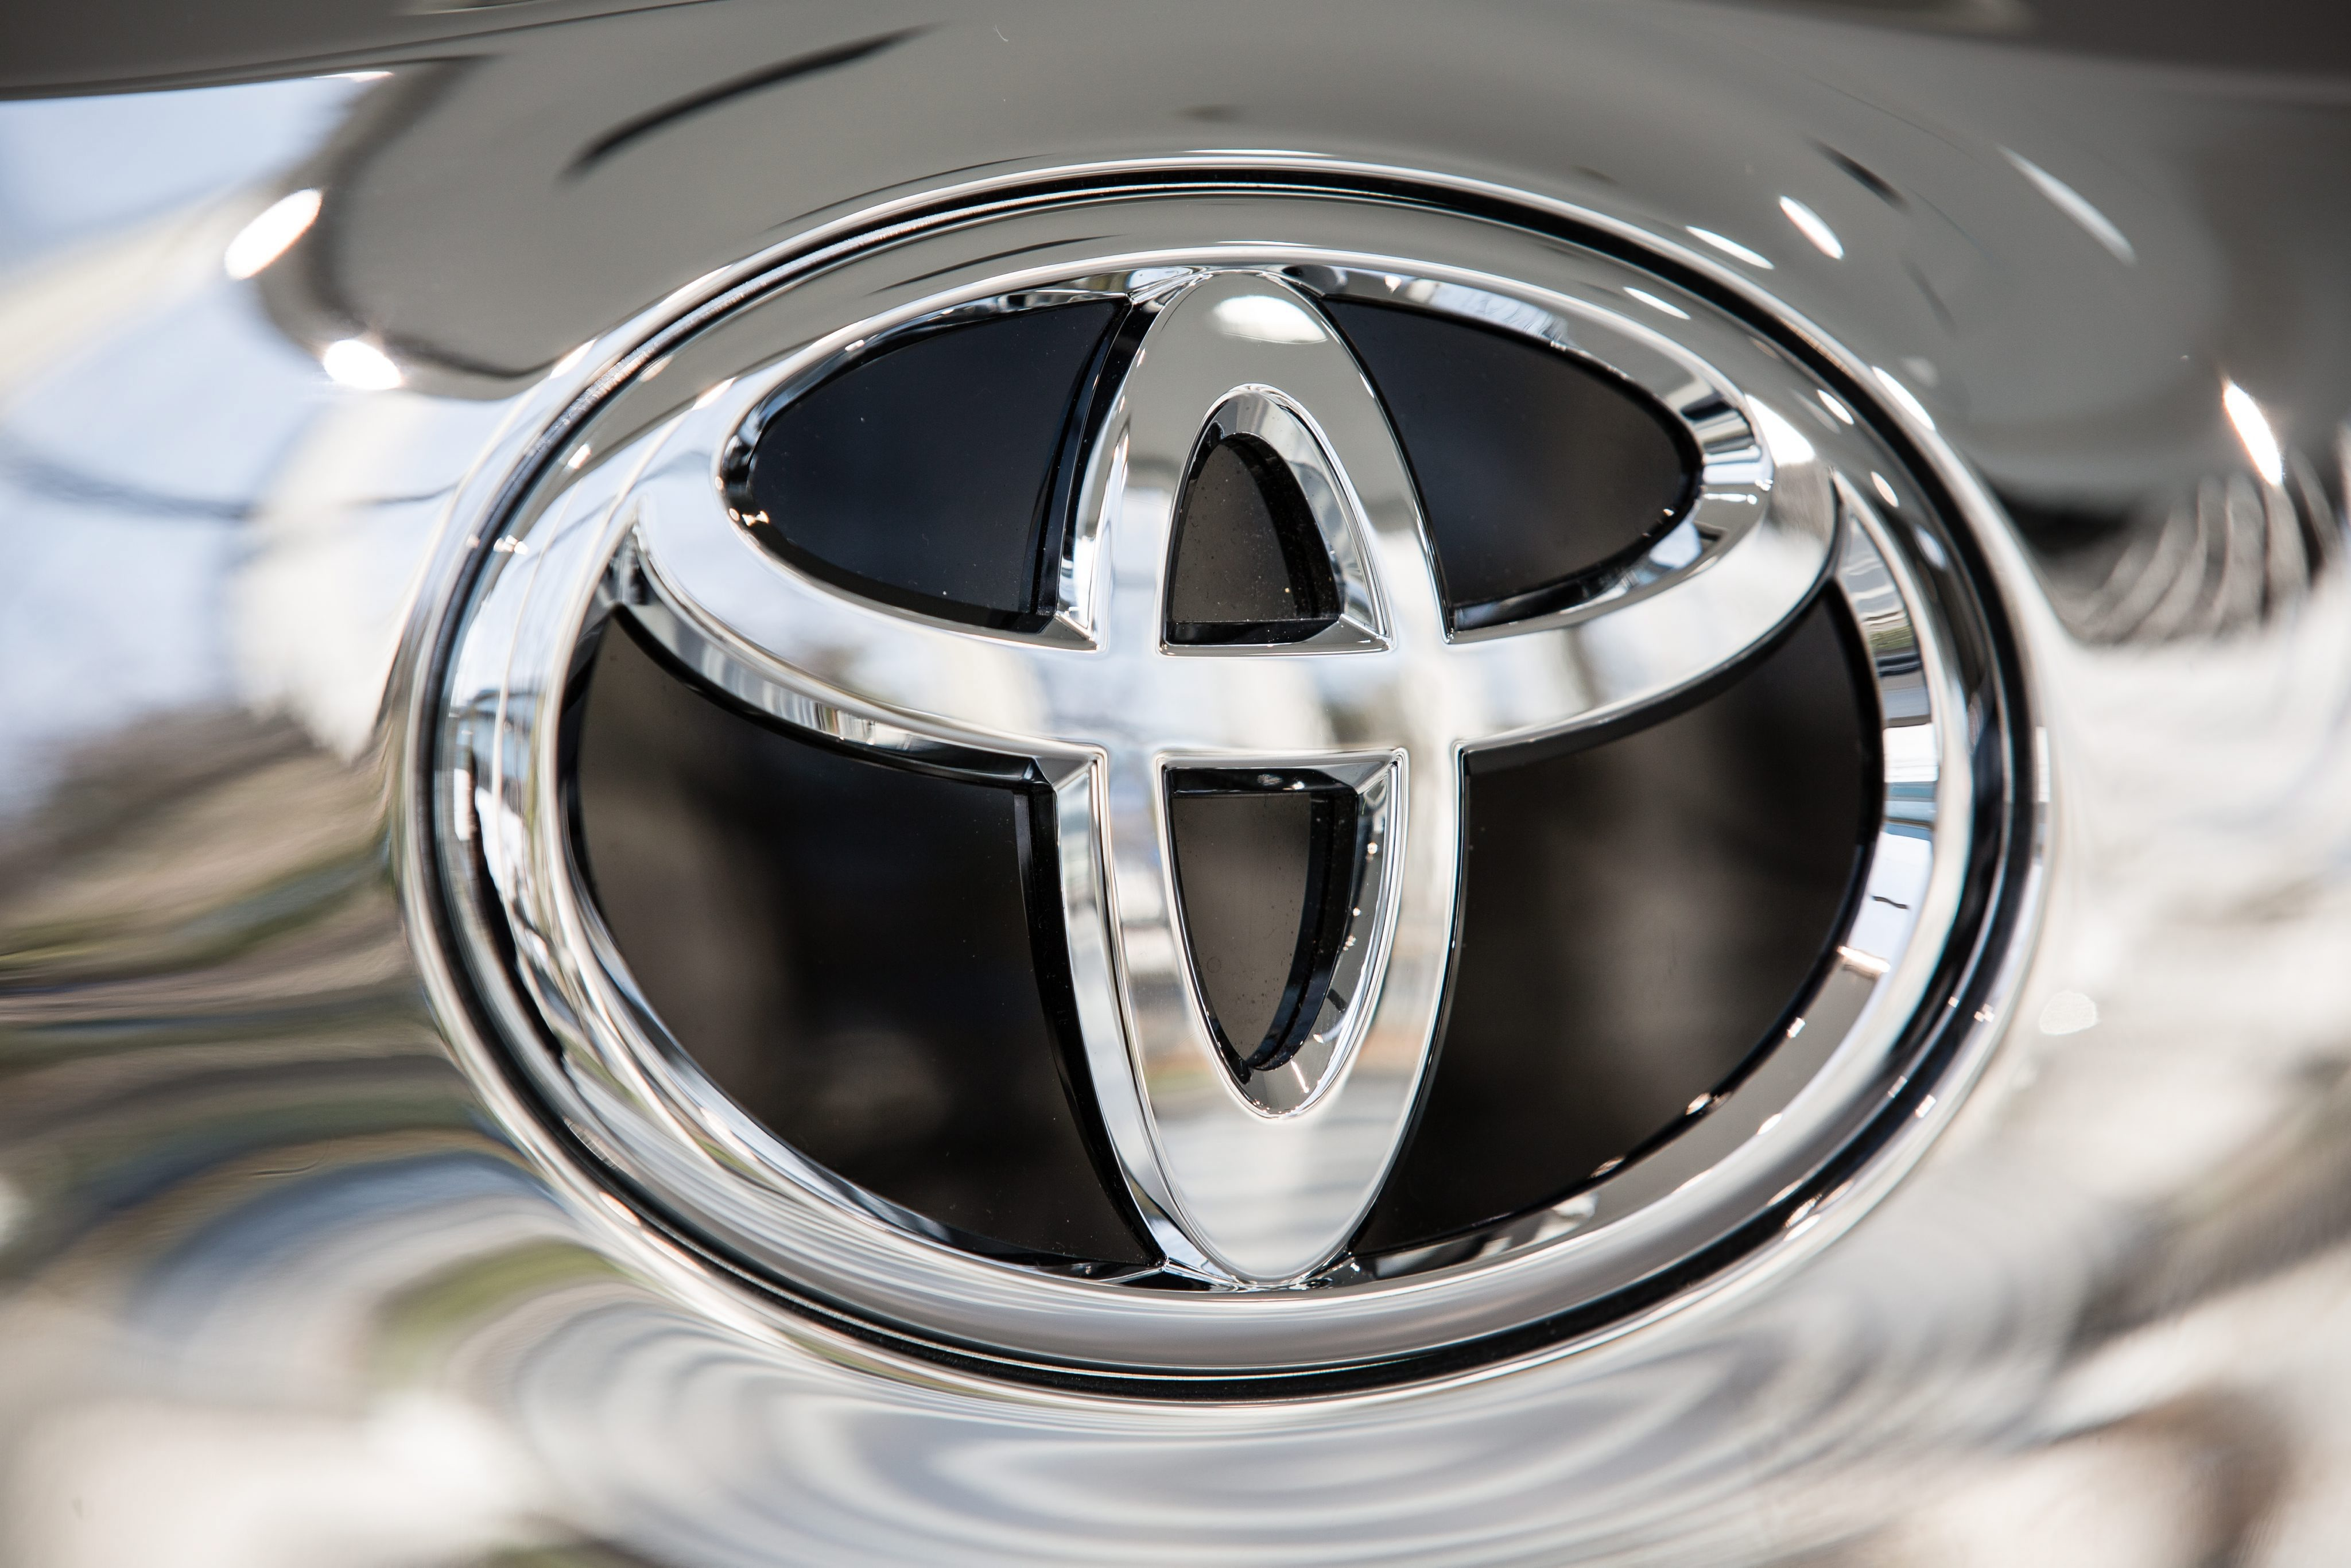 Toyota recalling cars for a second time over faulty airbags